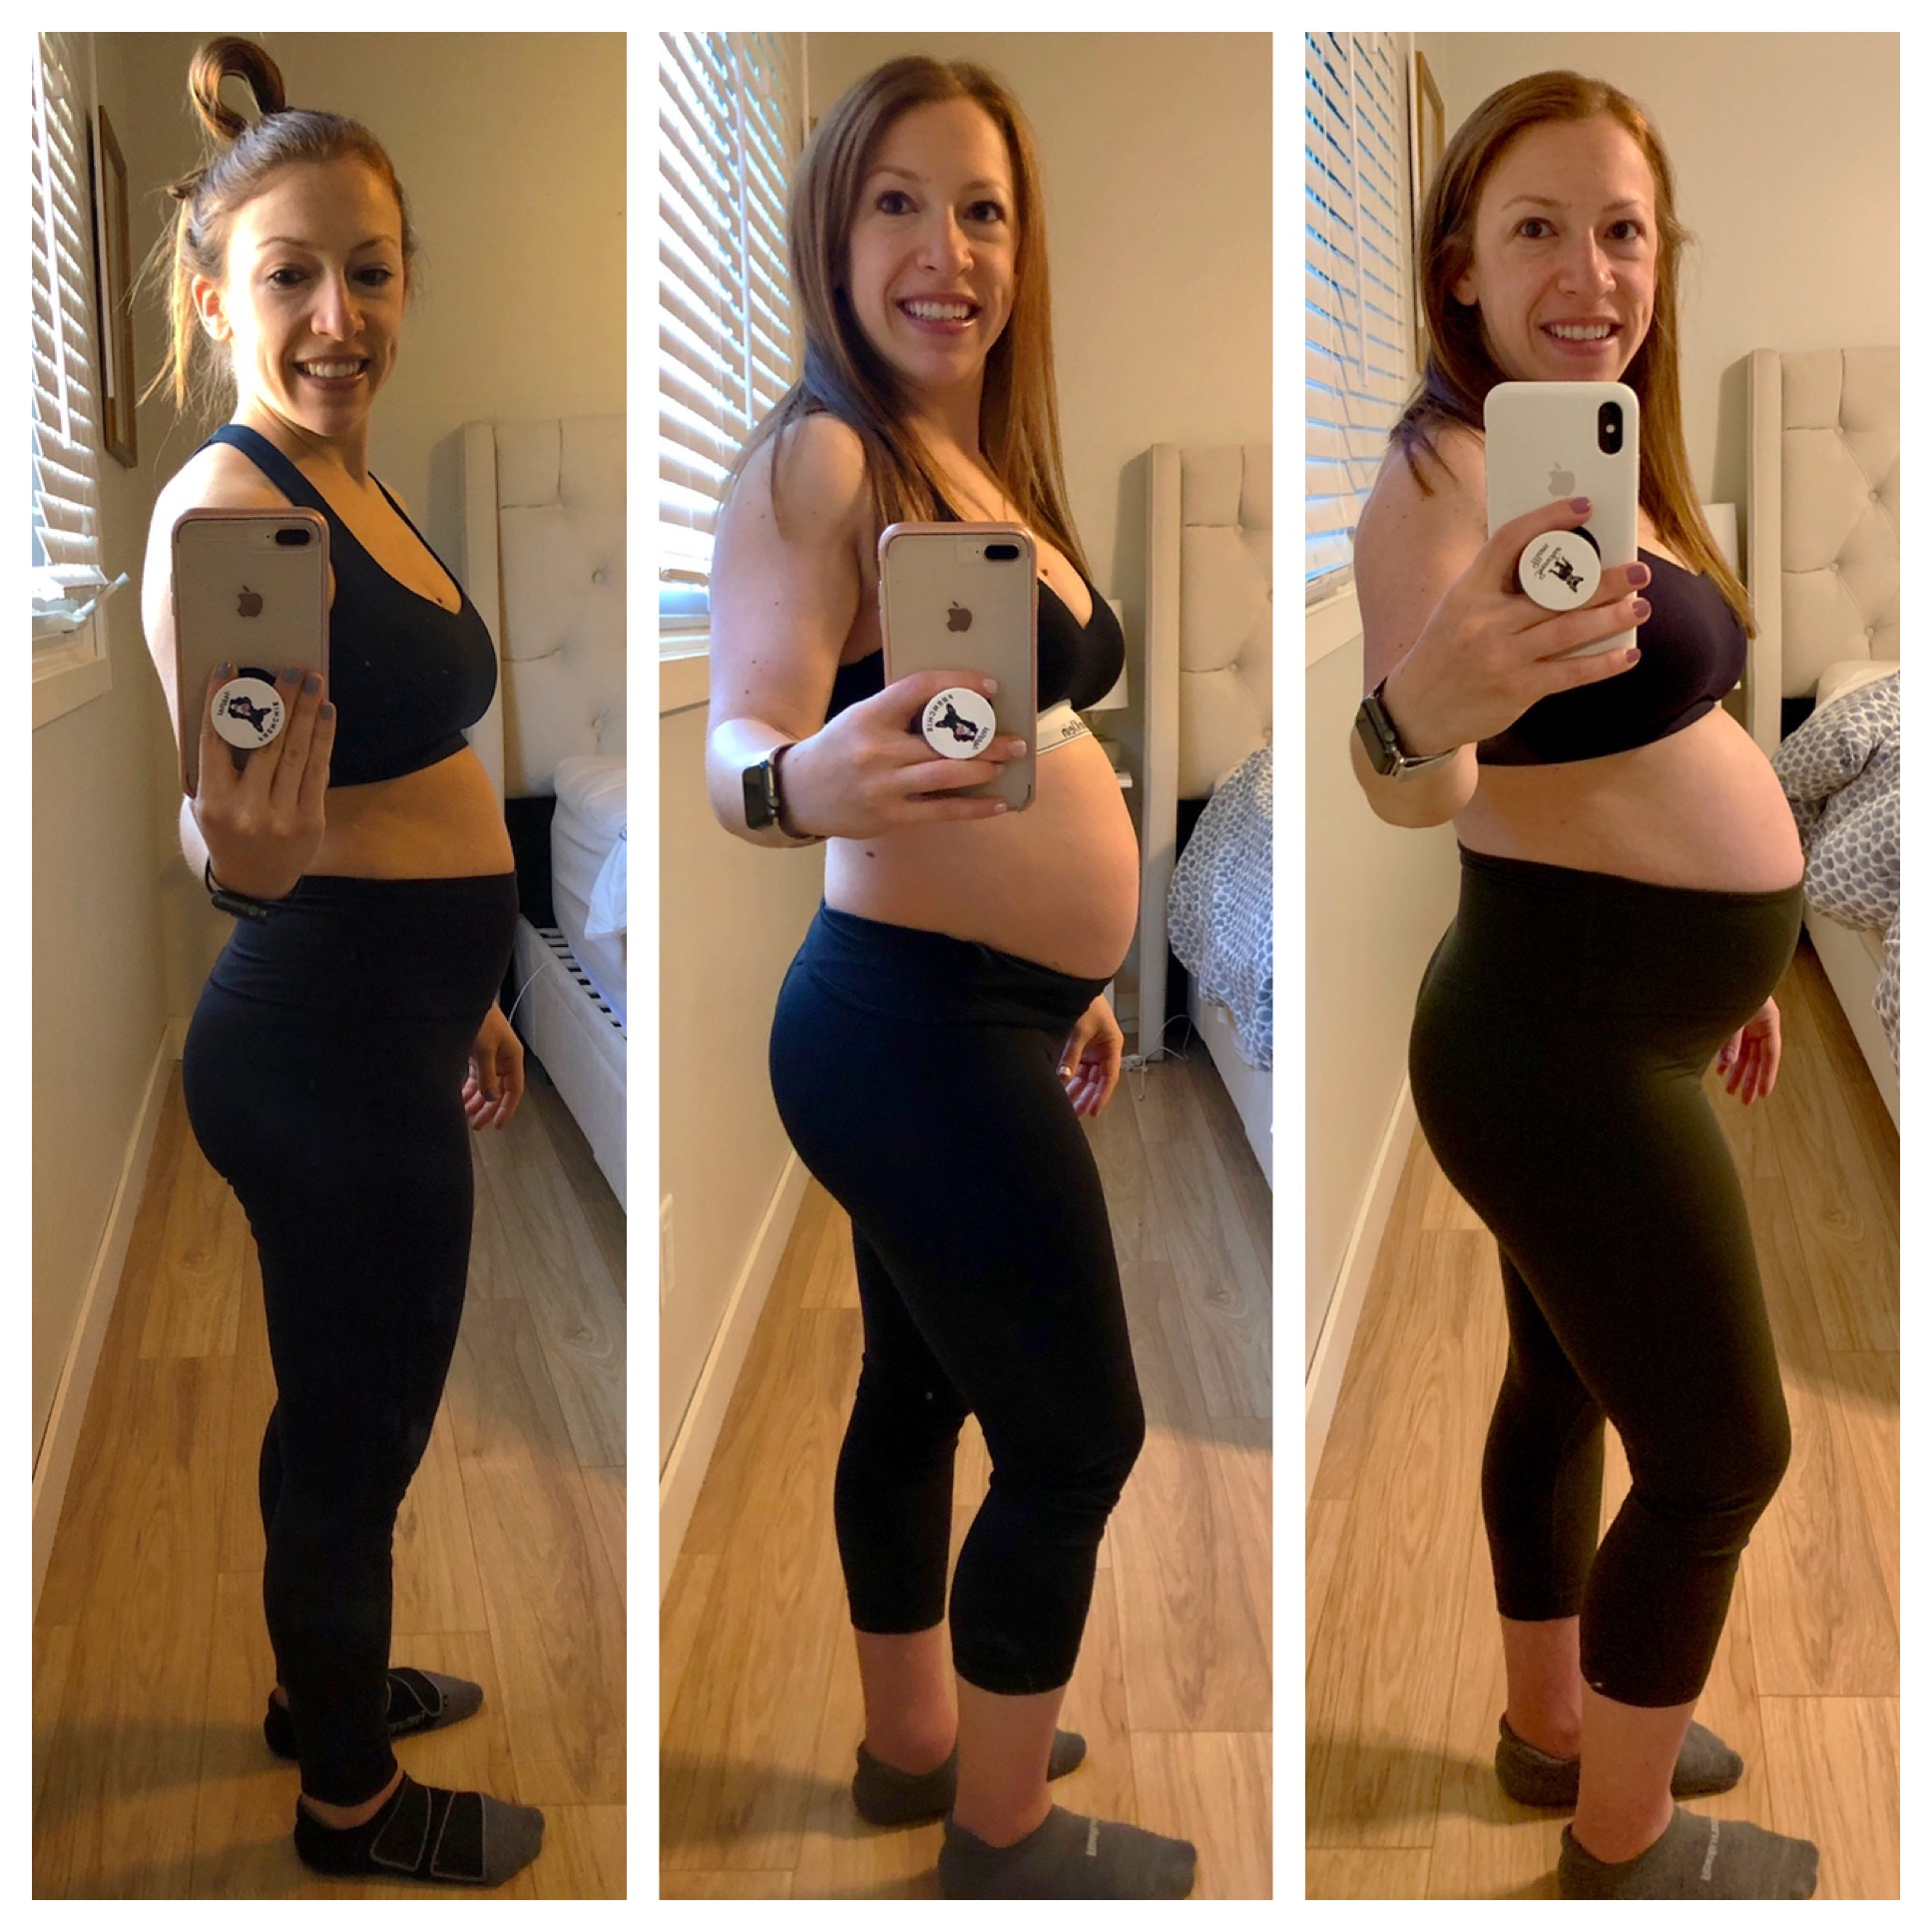 This was 14 weeks, 20 weeks, and 27 weeks. The beginning, middle and end of second trimester.